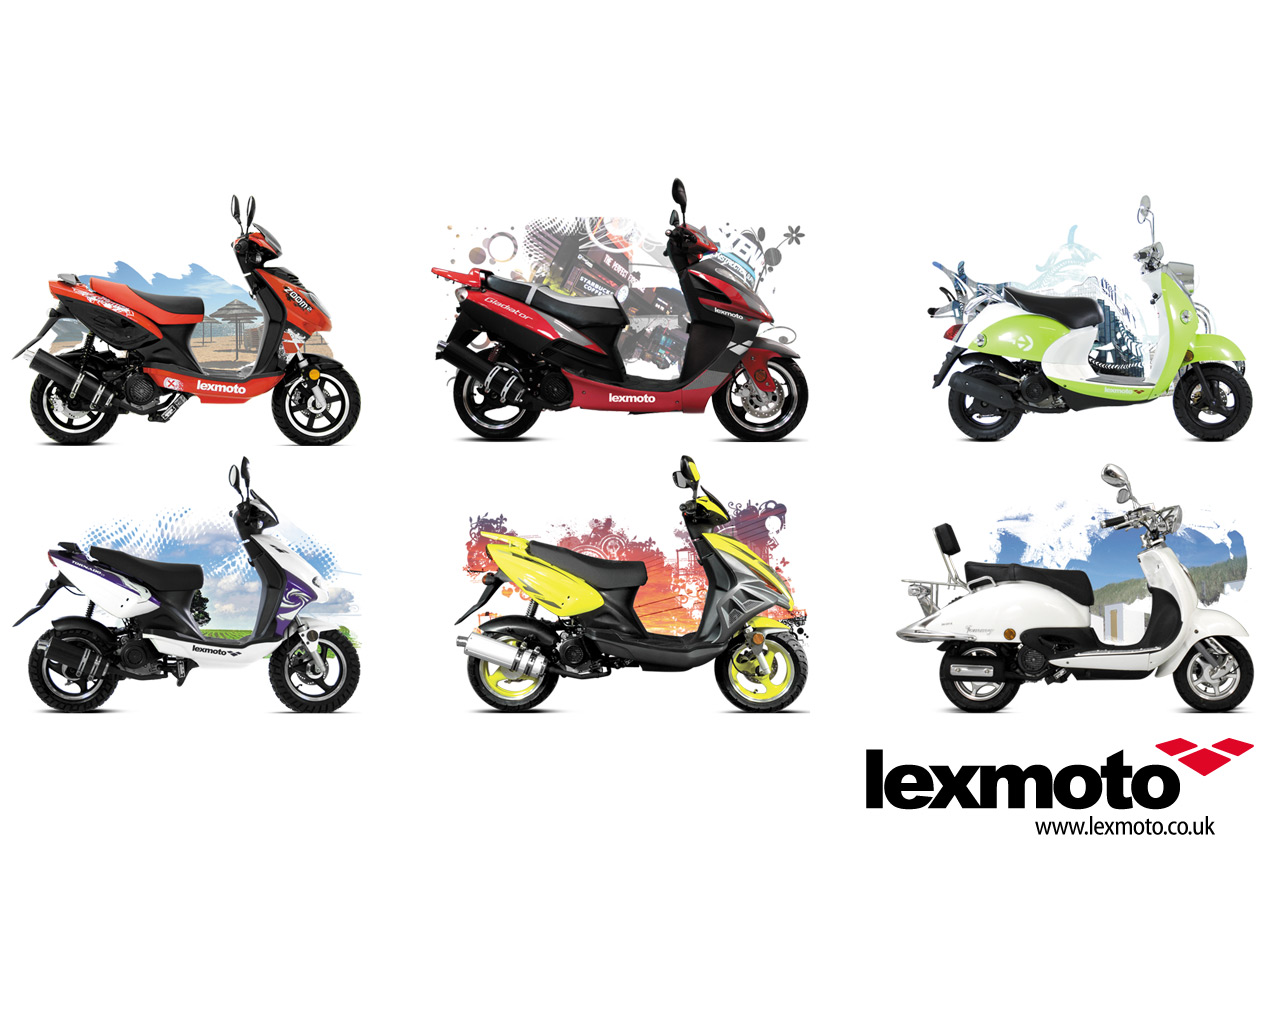 cc chinese scooter wiring diagram images lexmoto scooters 50cc scooters learner legal scooters tommy 50